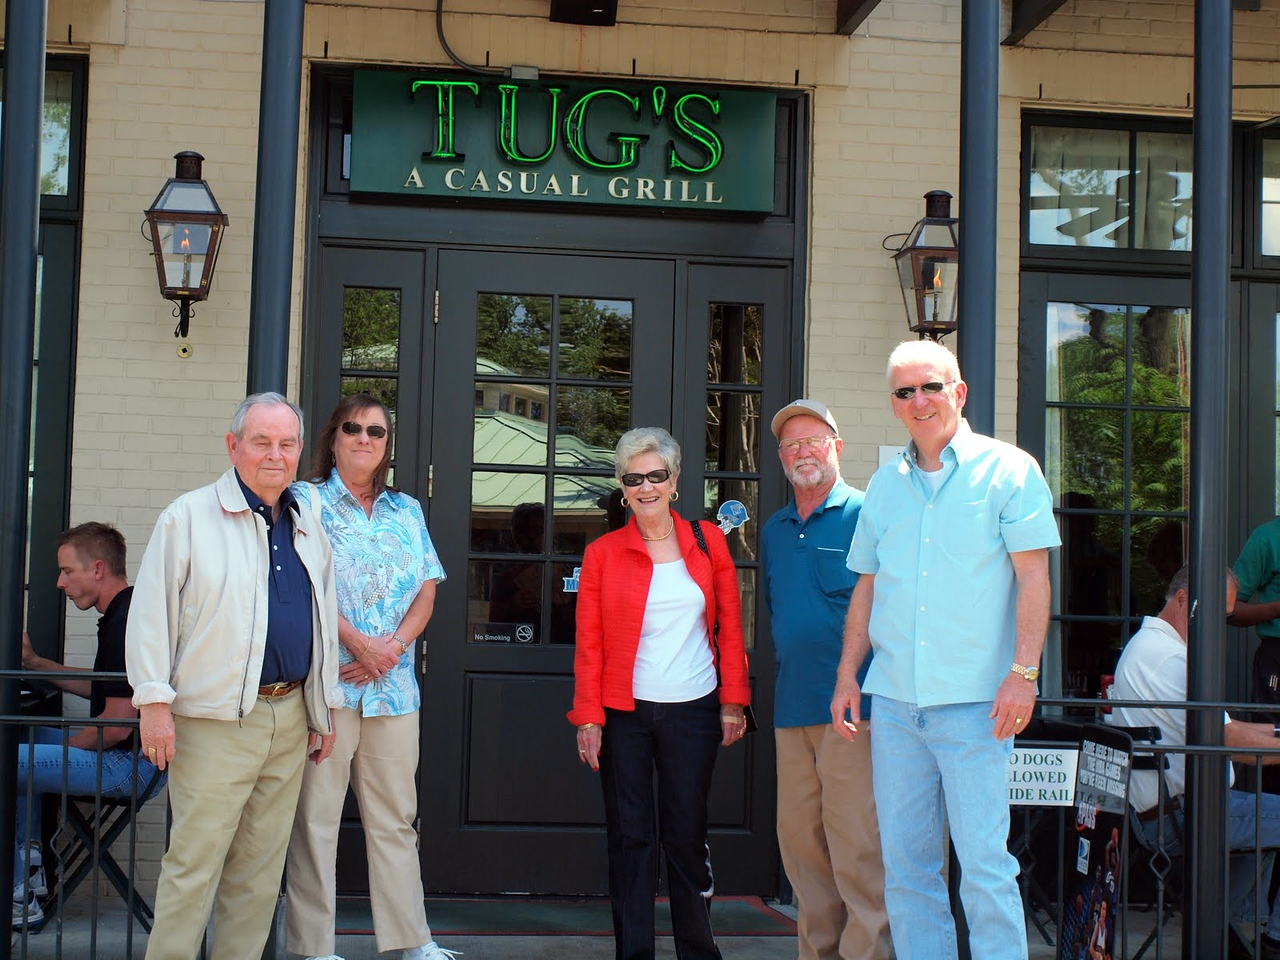 Here we all are outside of Tugs, where we had a great lunch